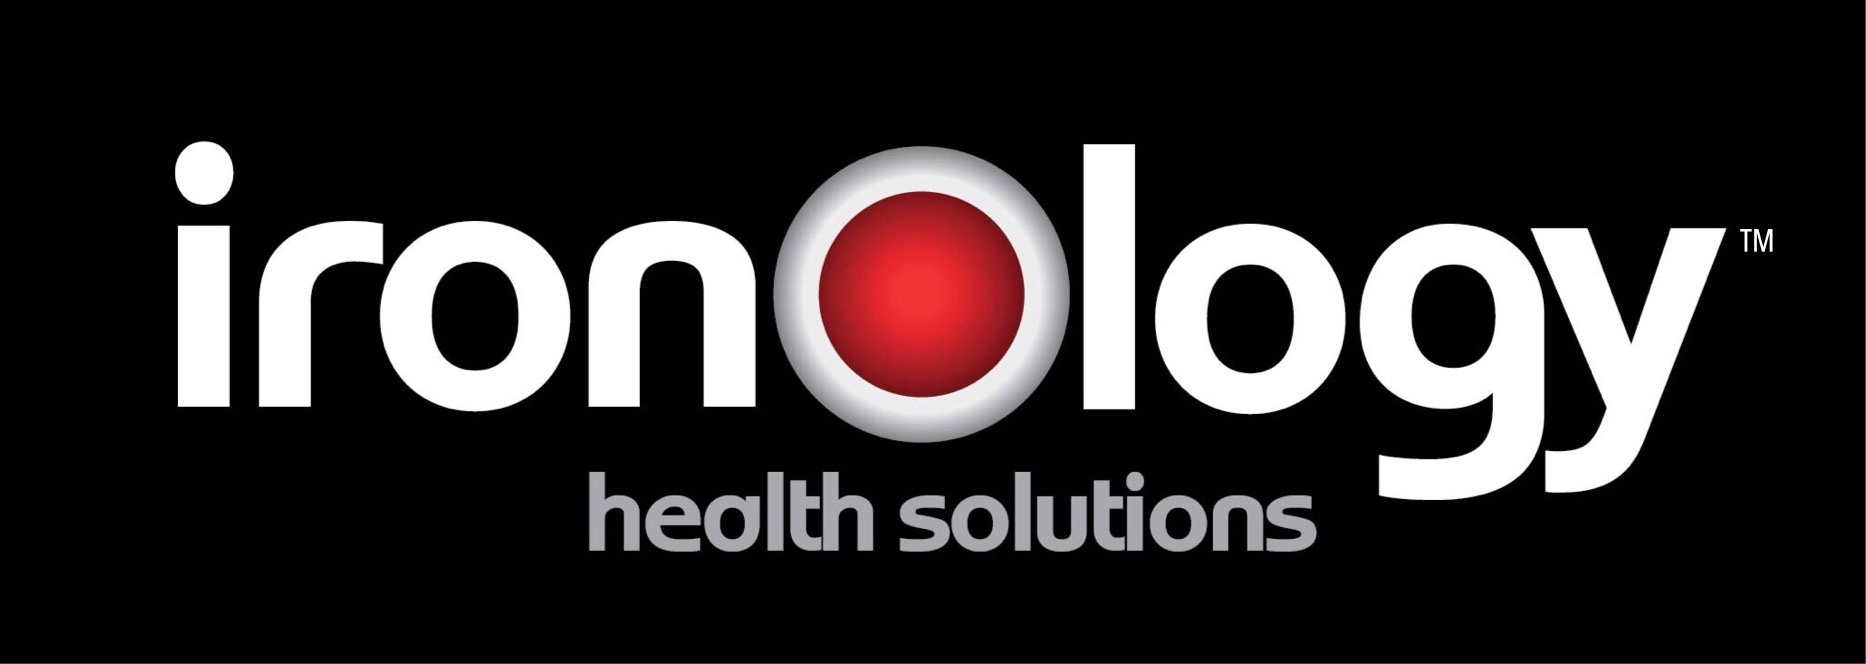 ironology health solutions logo